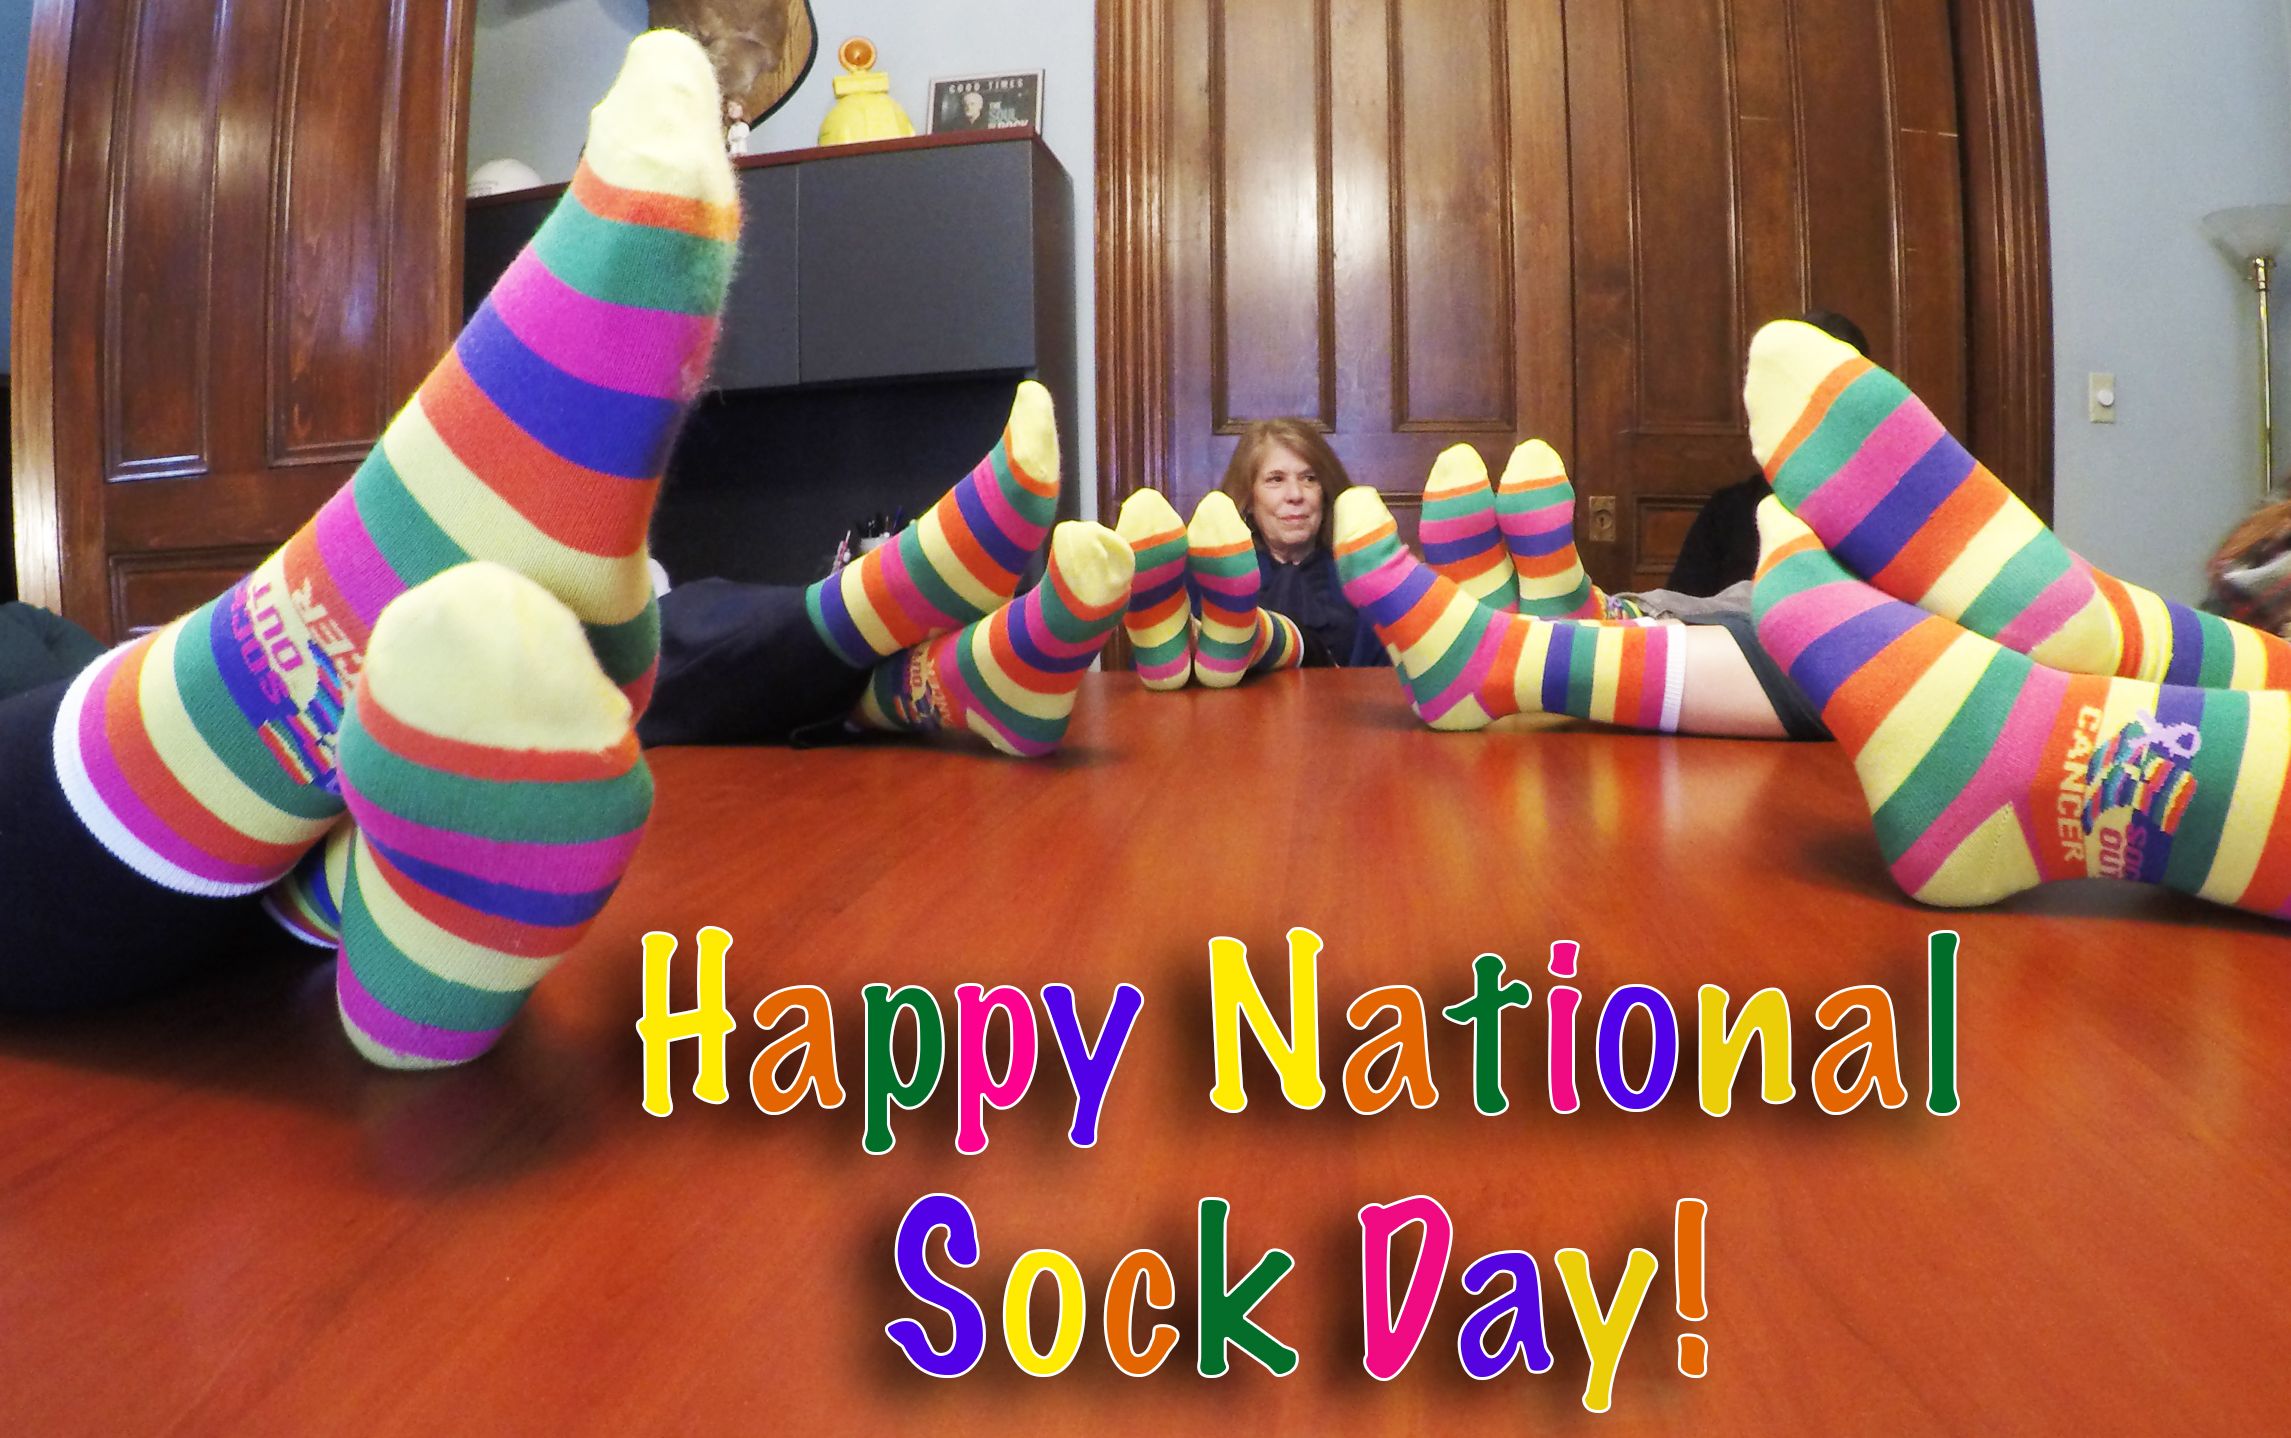 Happy National Sock Day